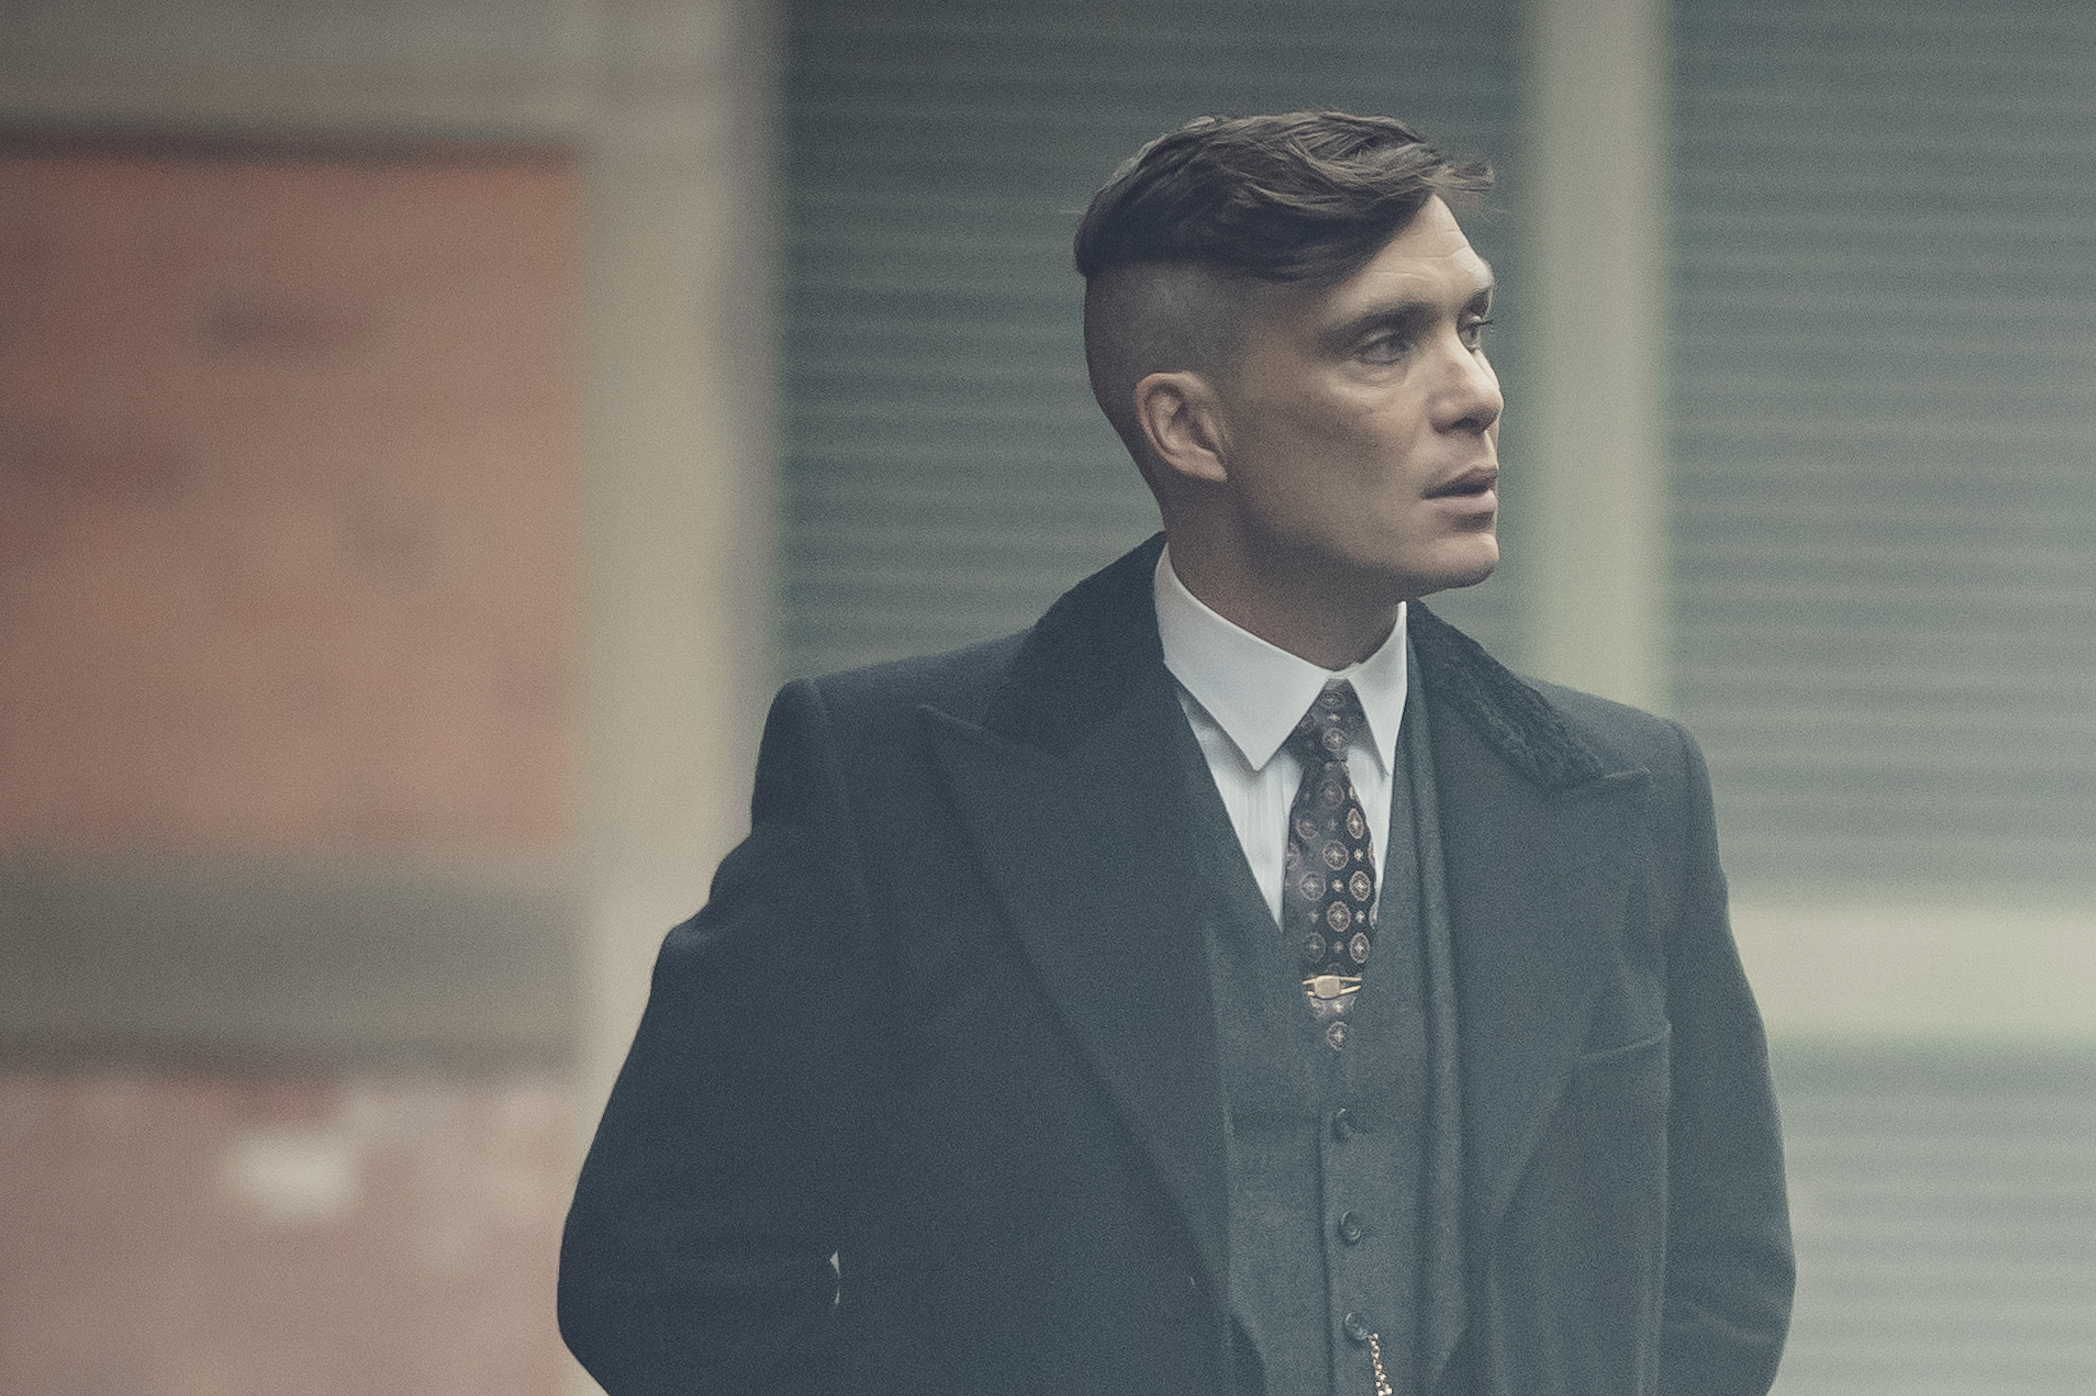 Peaky Blinders season 5 - Release date, cast, plot